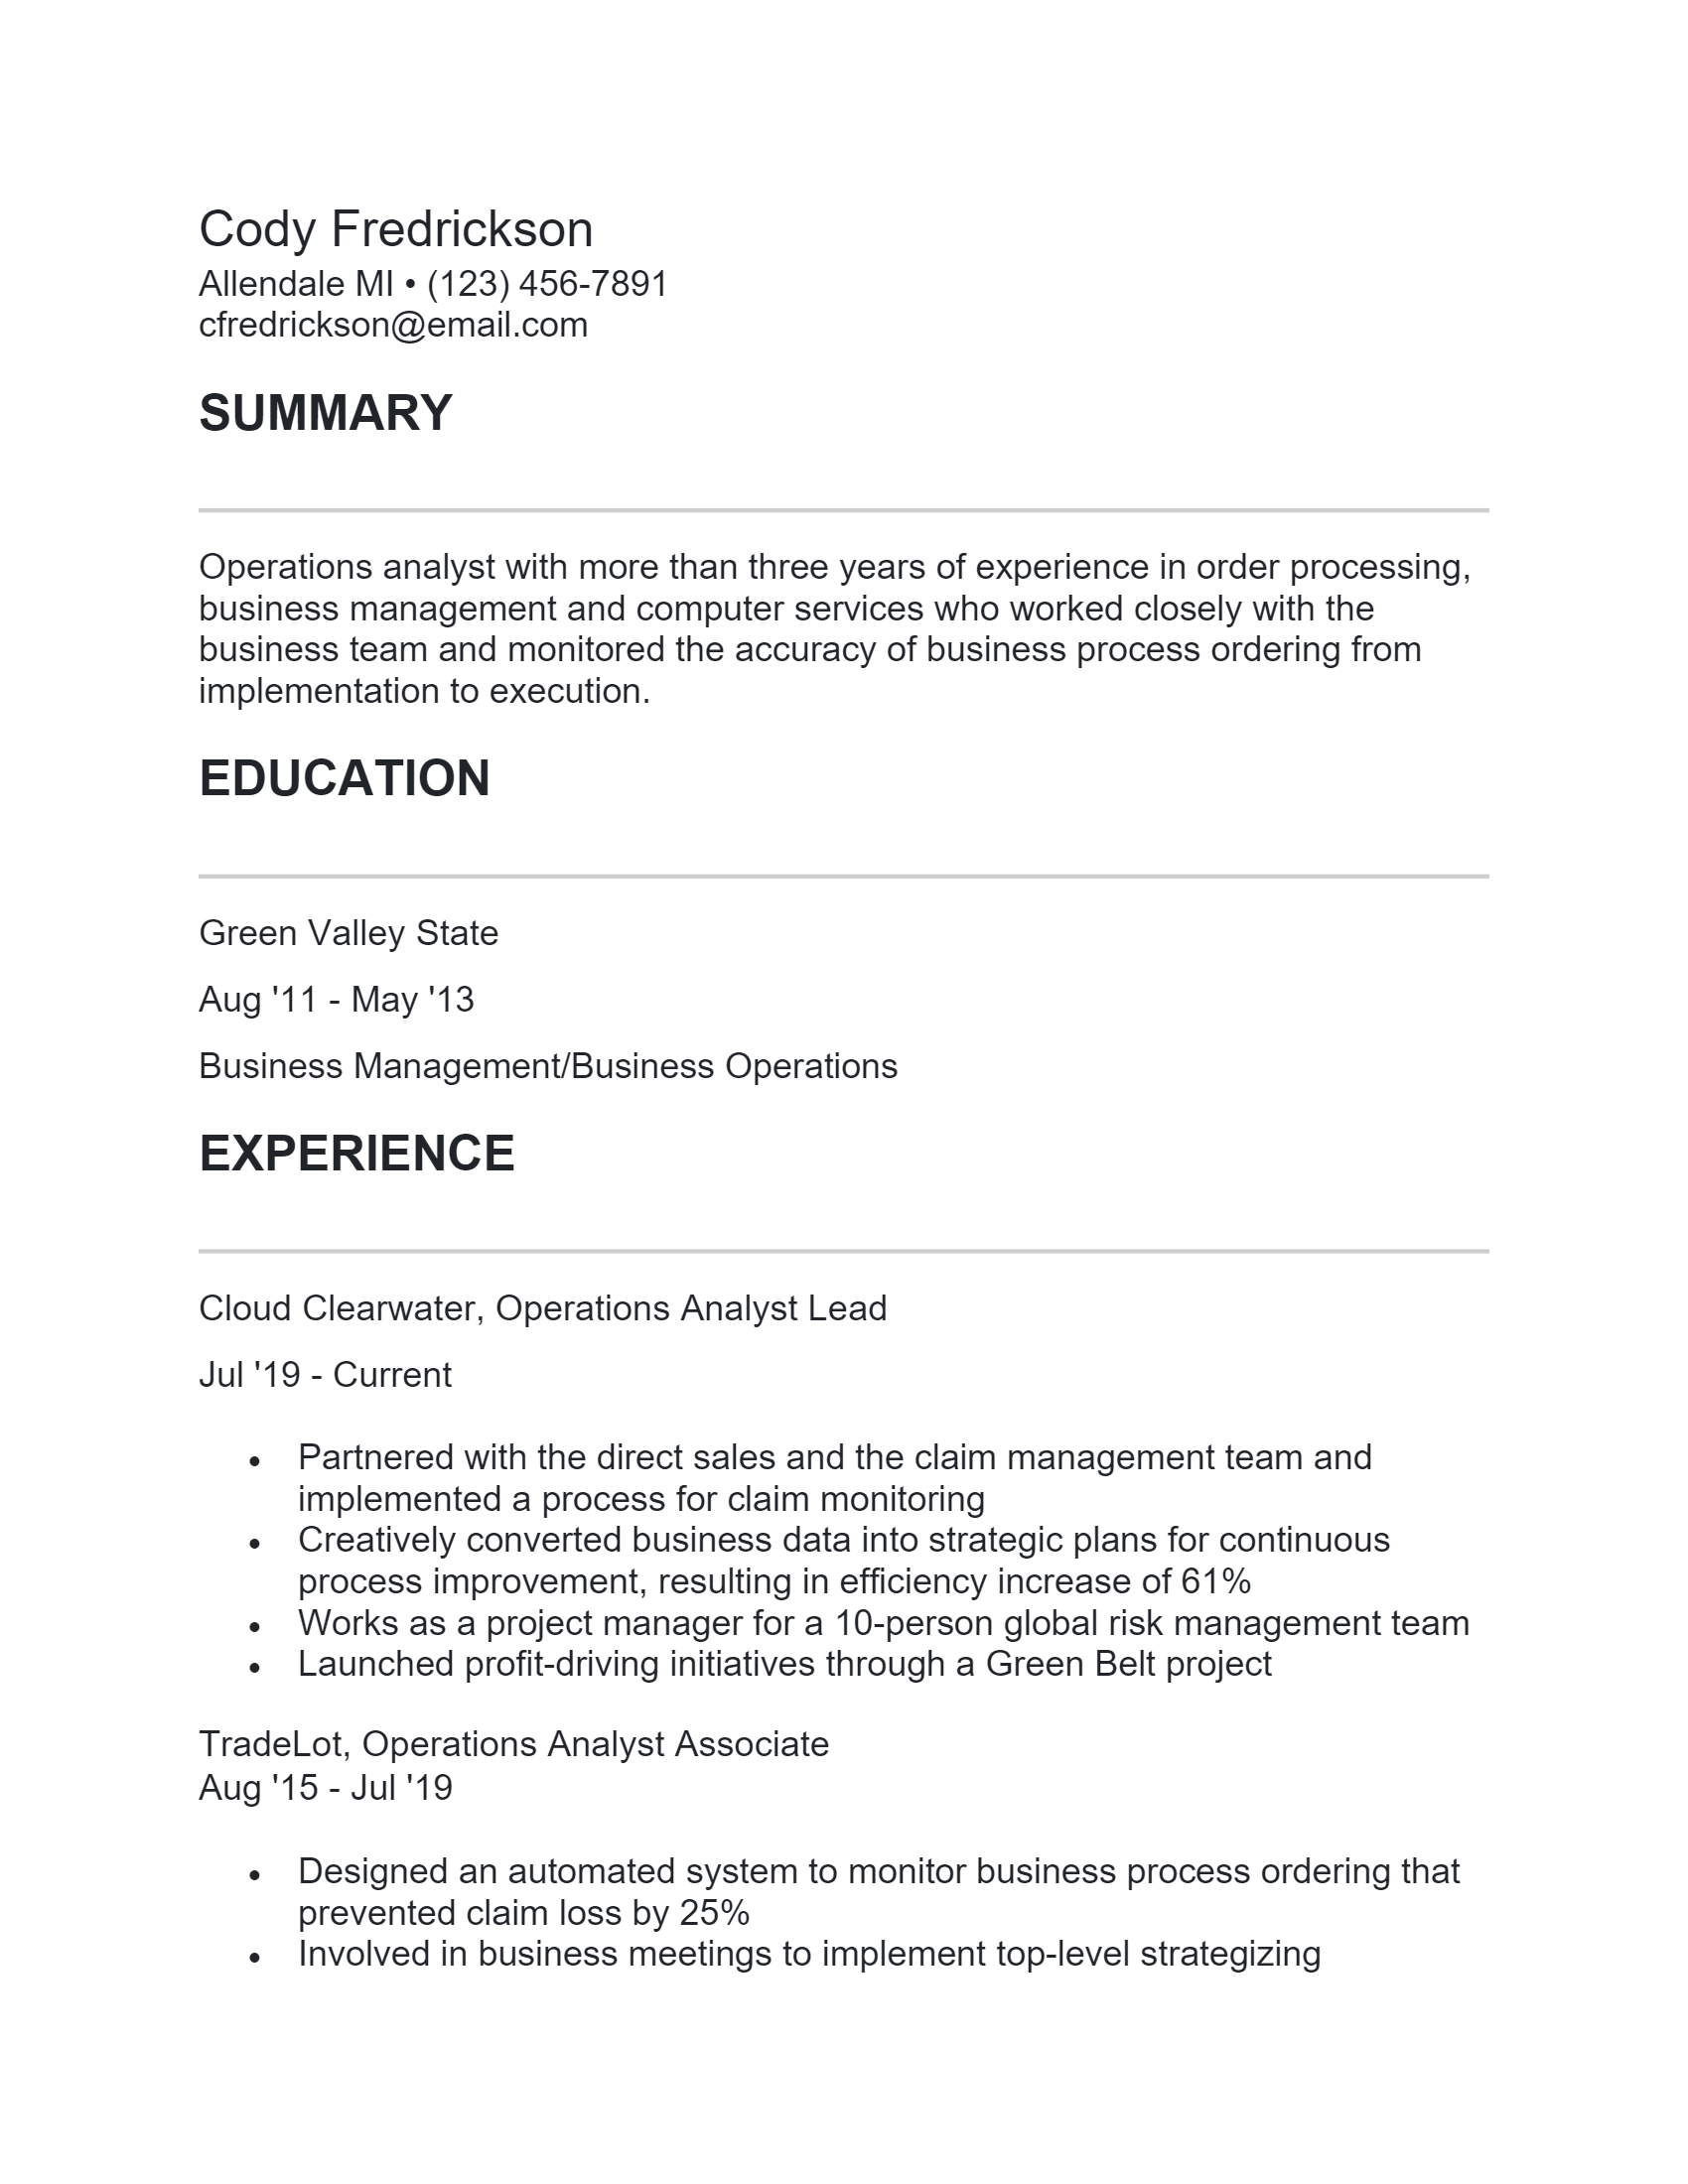 Operations Analyst .Docx(Word)